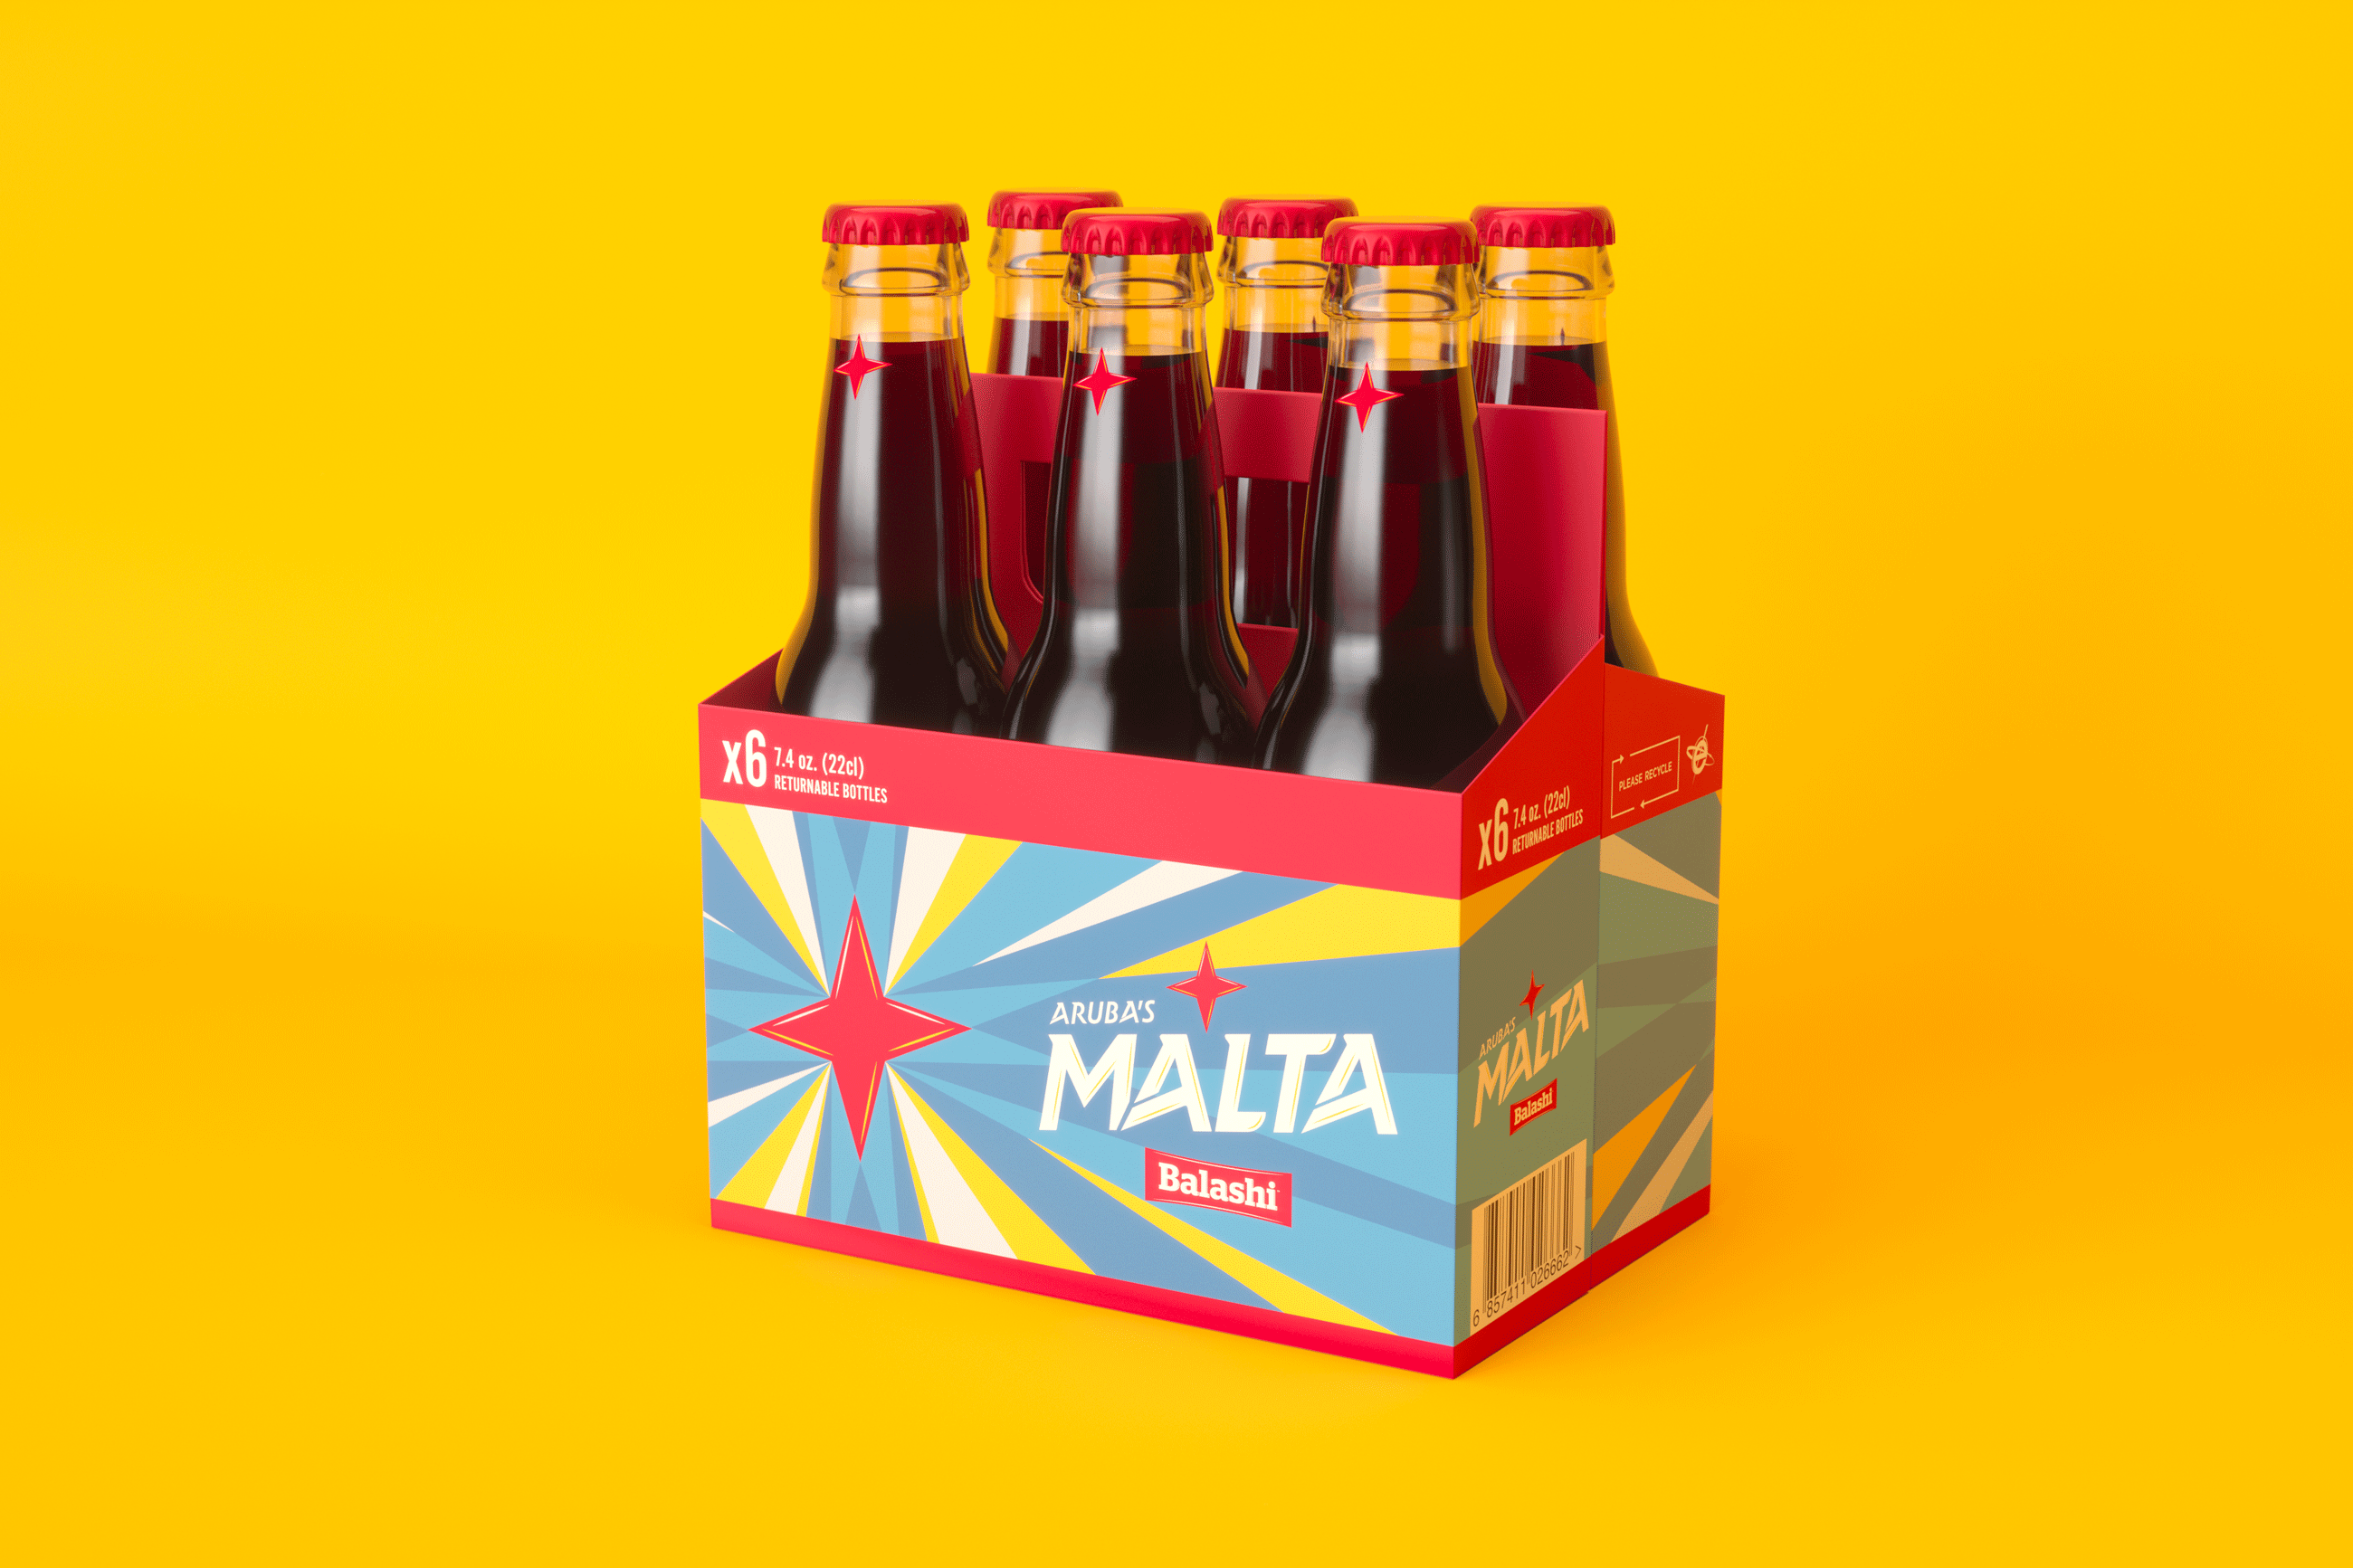 Thirst Rebrands Malta Balashi as a Beacon of Upbeat Island Energy